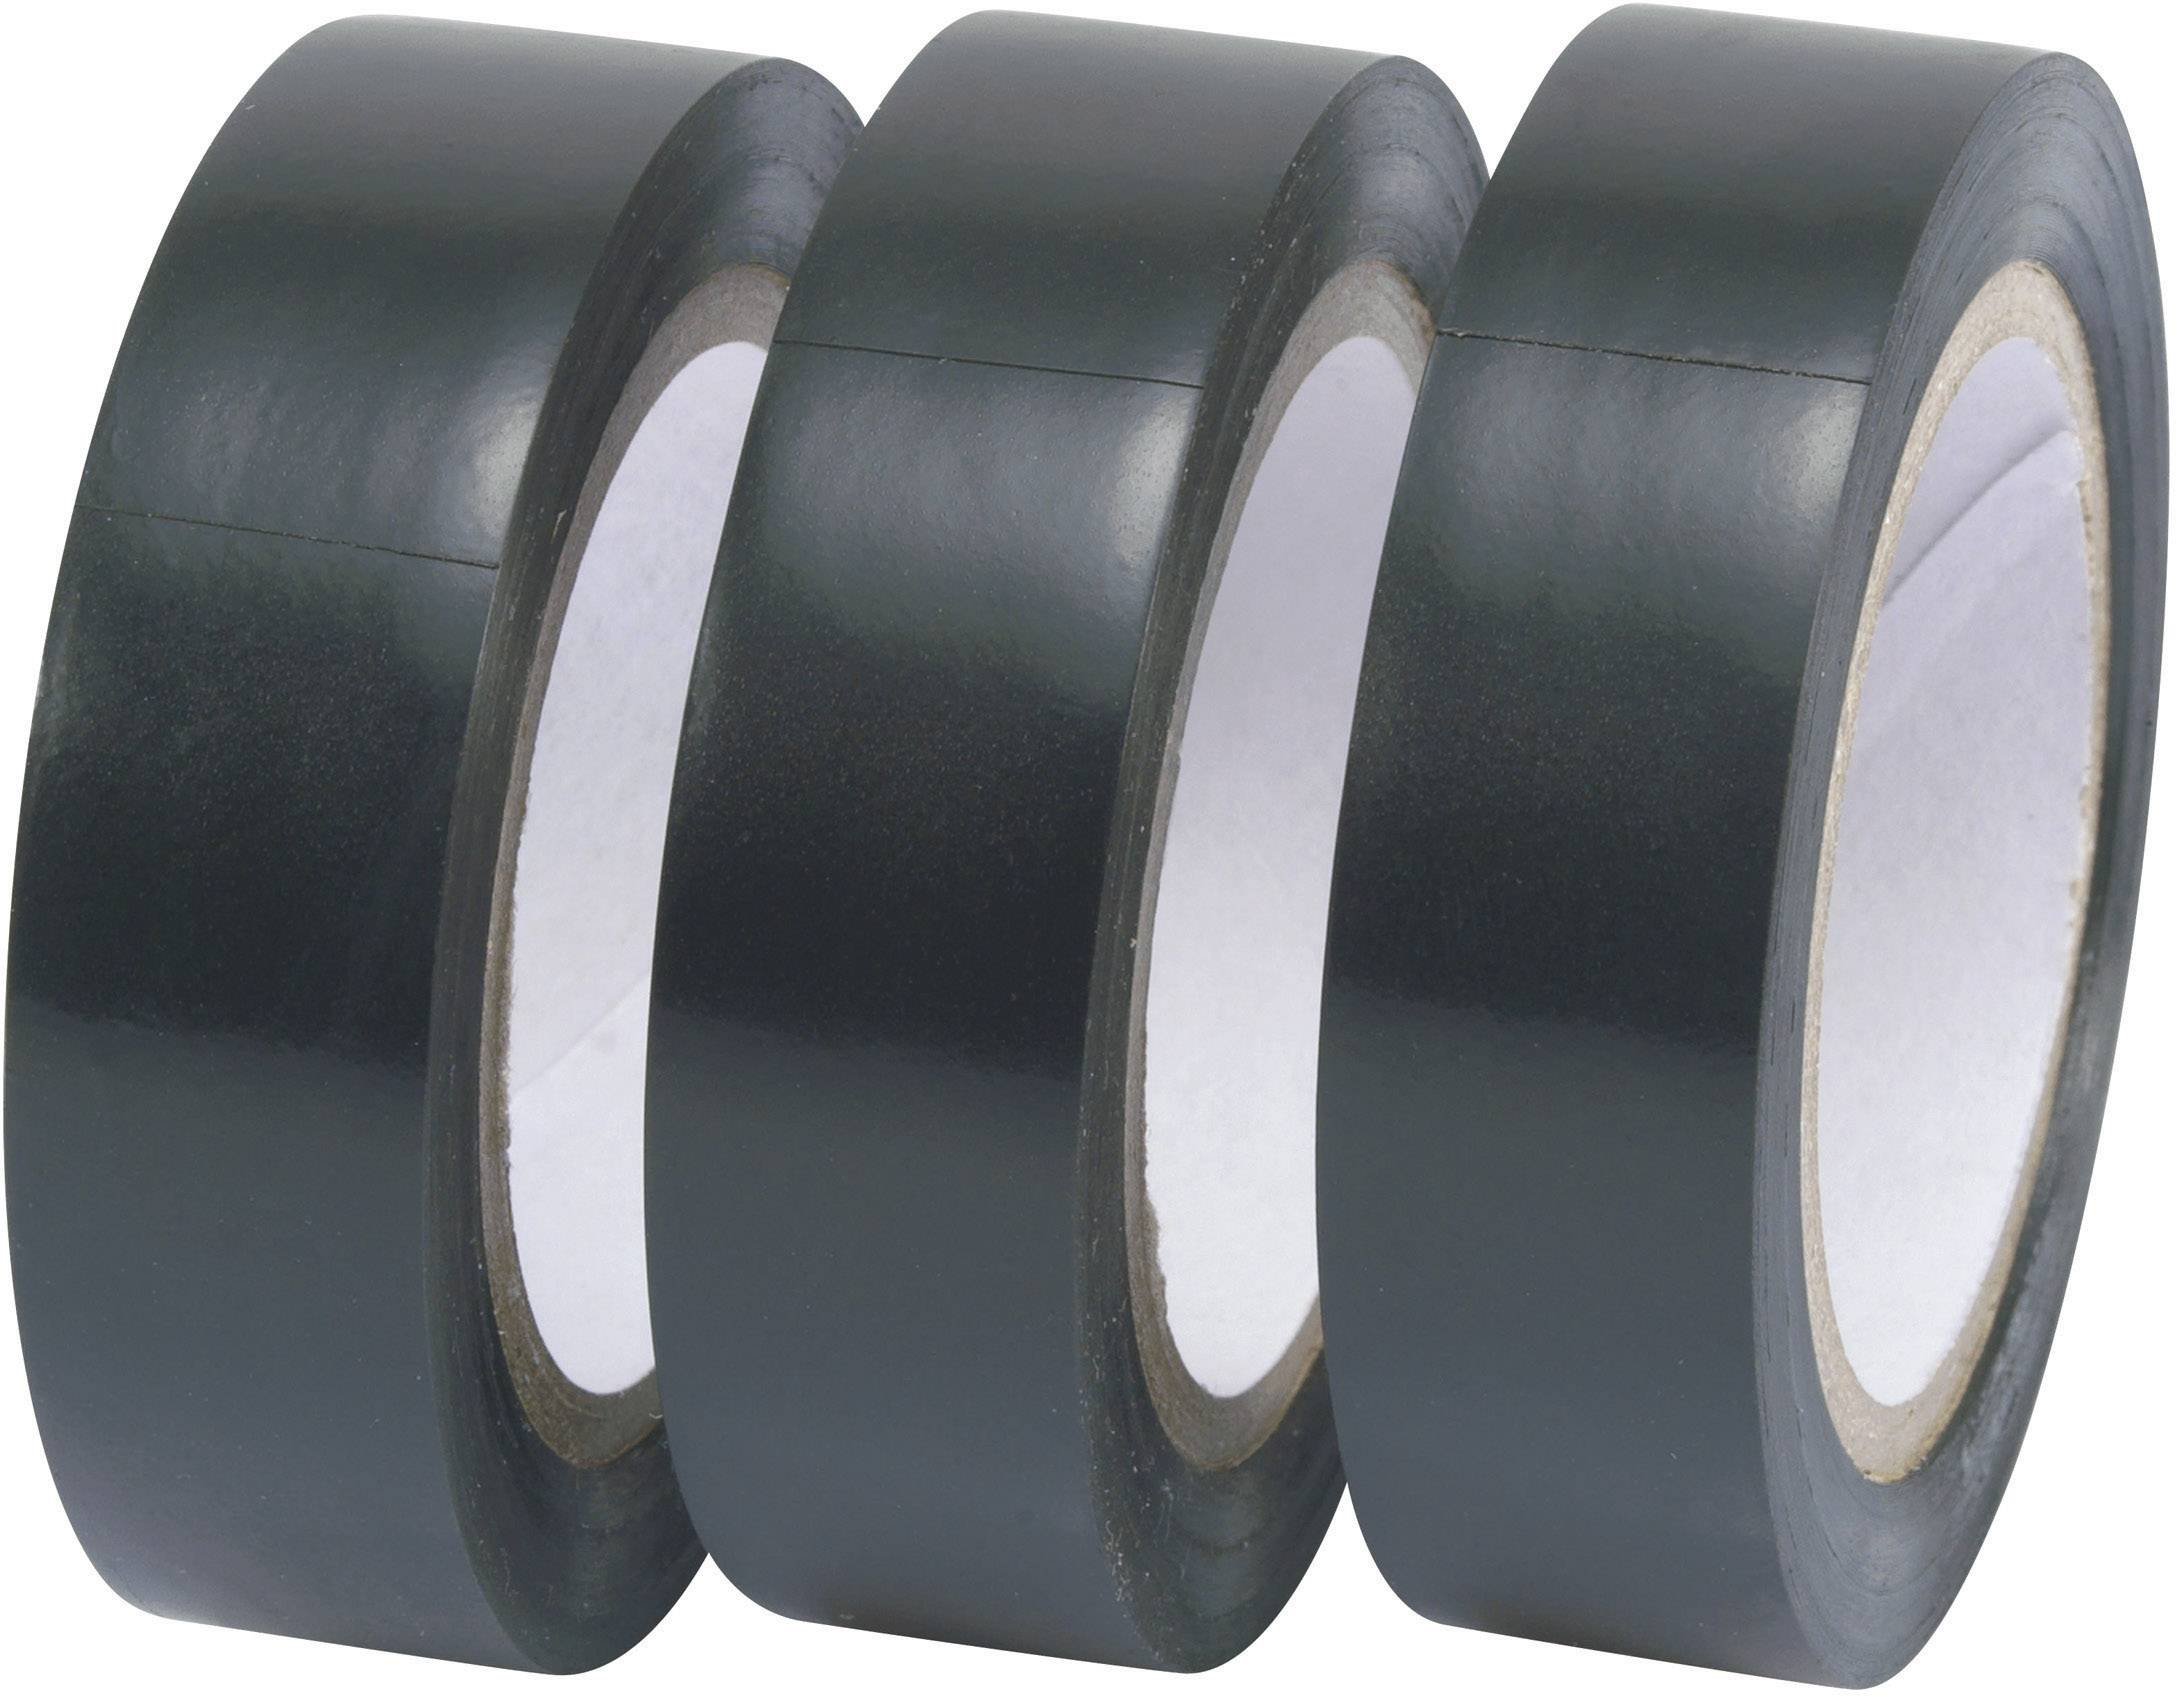 n 6m x 19mm 80610139521 1 Rolle 3M insulating tape Scotch